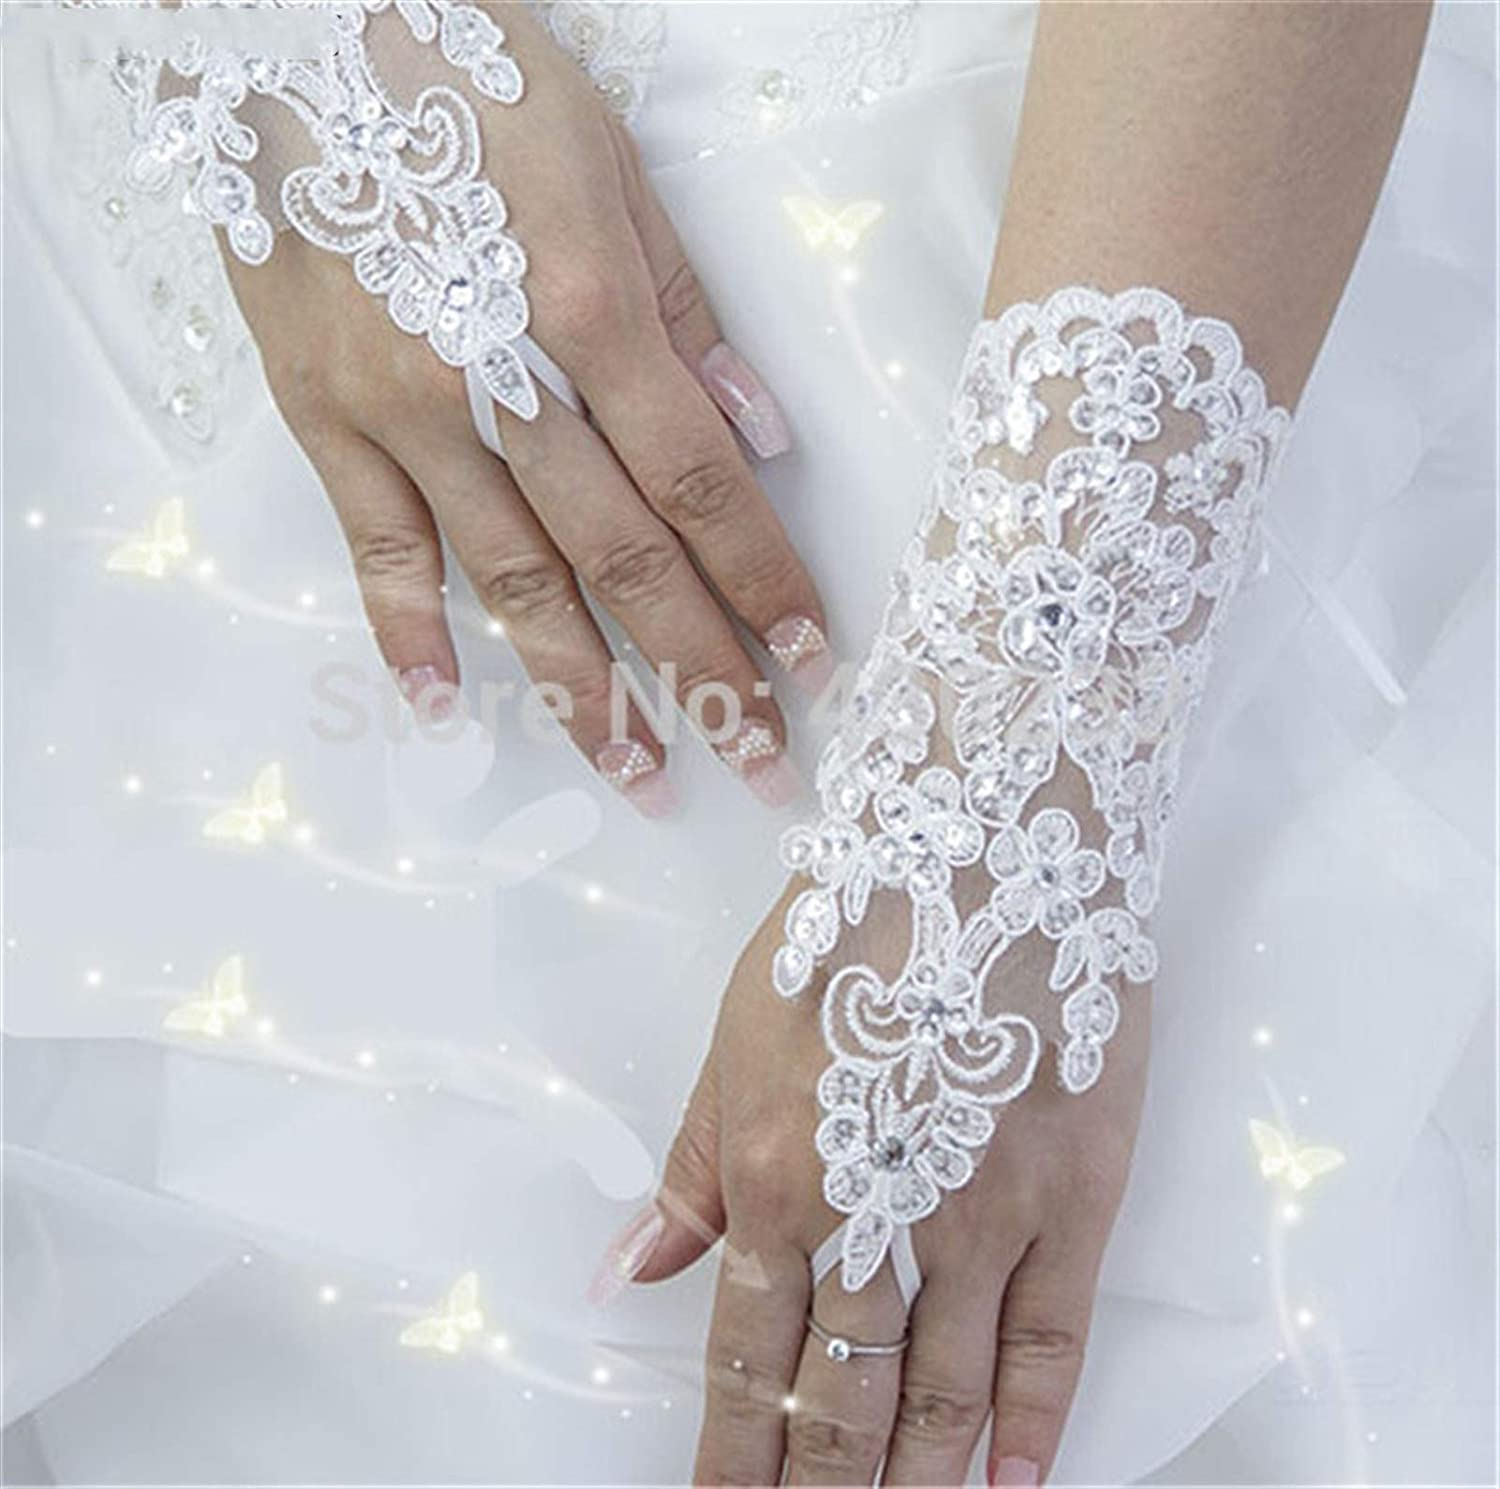 YSYSPUJ Sun Indianapolis Free Shipping Cheap Bargain Gift Mall Protection Gloves Elegant Short Lace Beaded Br Satin